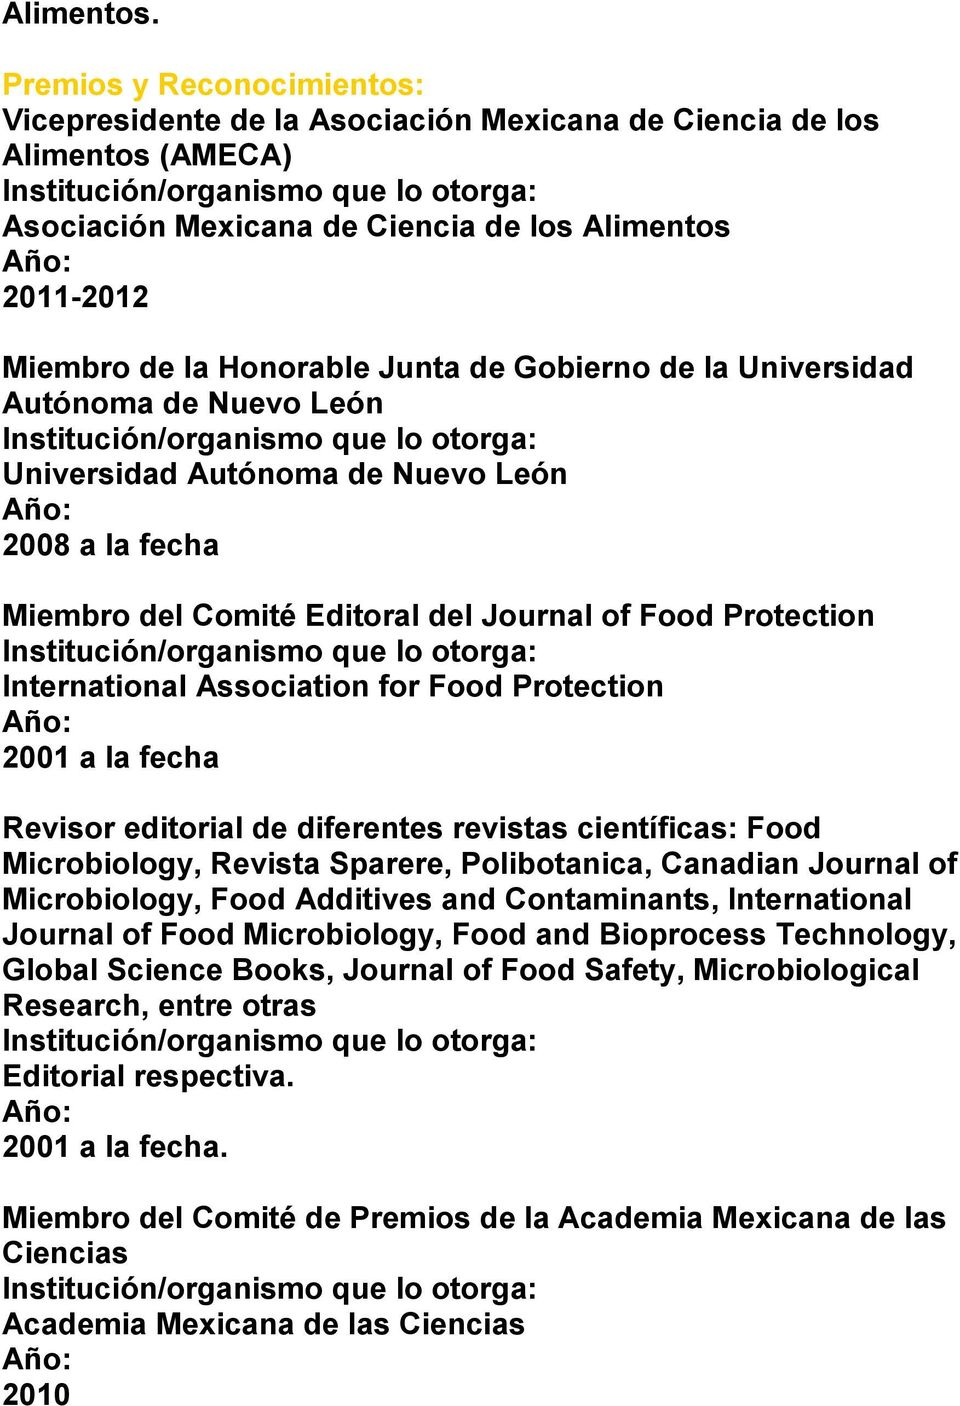 Gobierno de la Universidad Autónoma de Nuevo León 2008 a la fecha Miembro del Comité Editoral del Journal of Food Protection International Association for Food Protection 2001 a la fecha Revisor